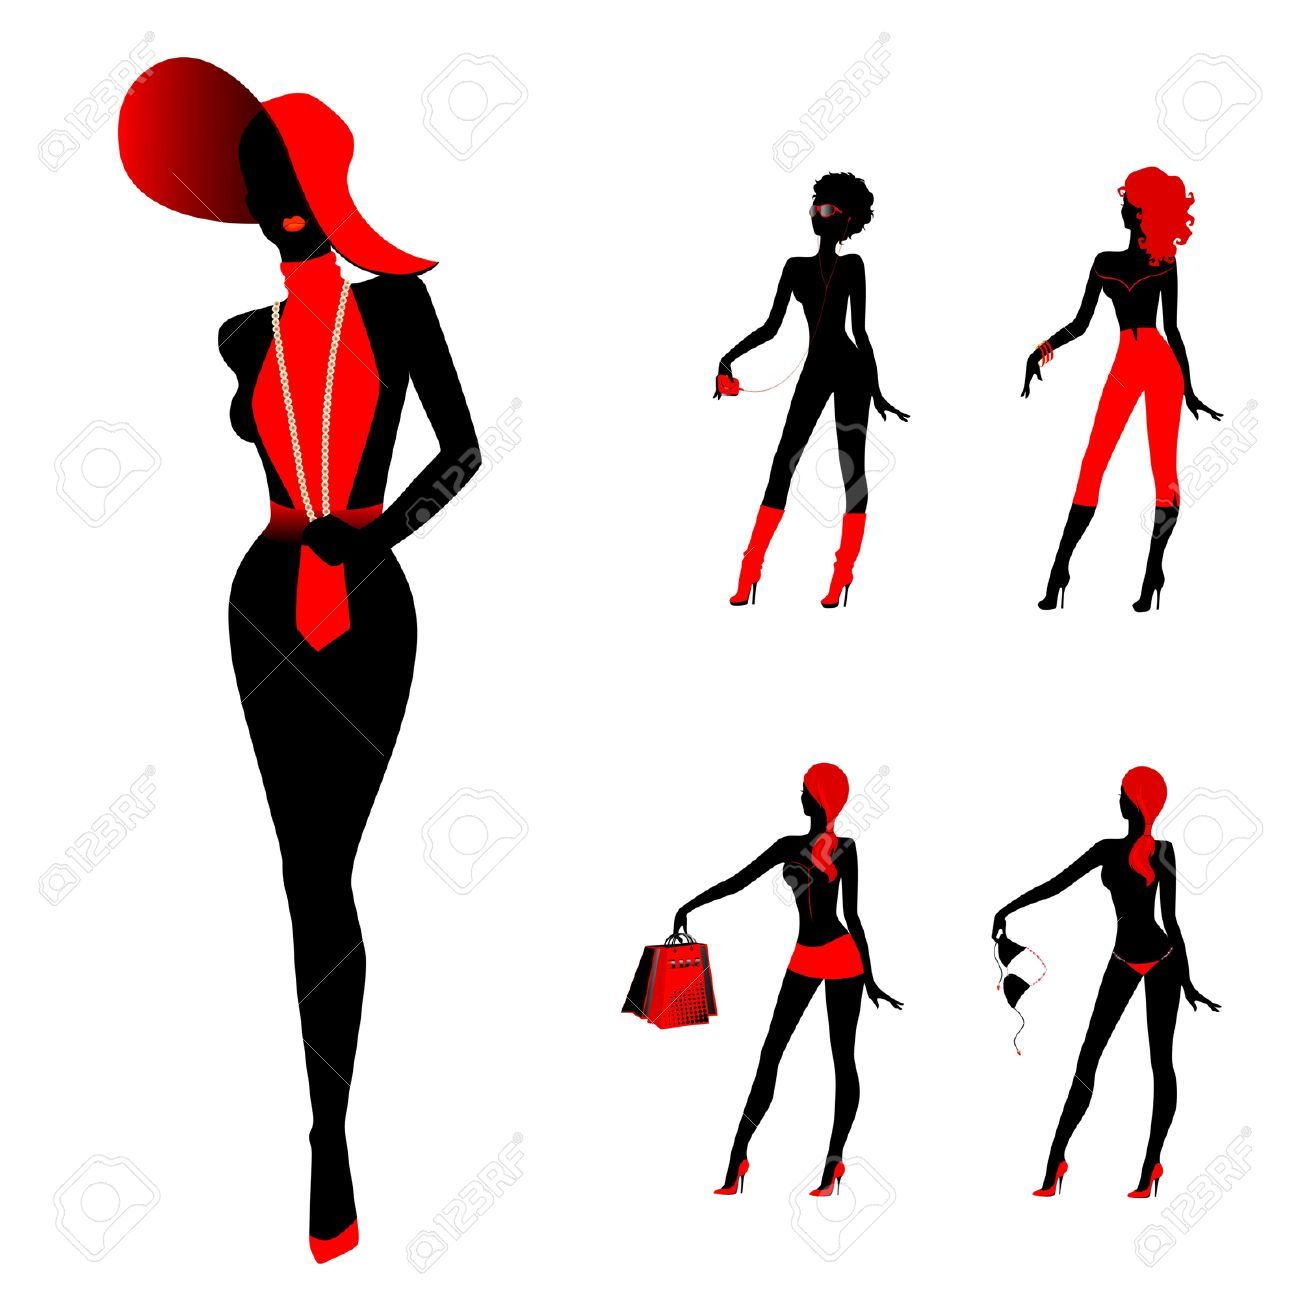 7004929 set of beautiful silhouettes of girls stock vector rh pinterest com Fat Lady Silhouette Fat Lady Silhouette